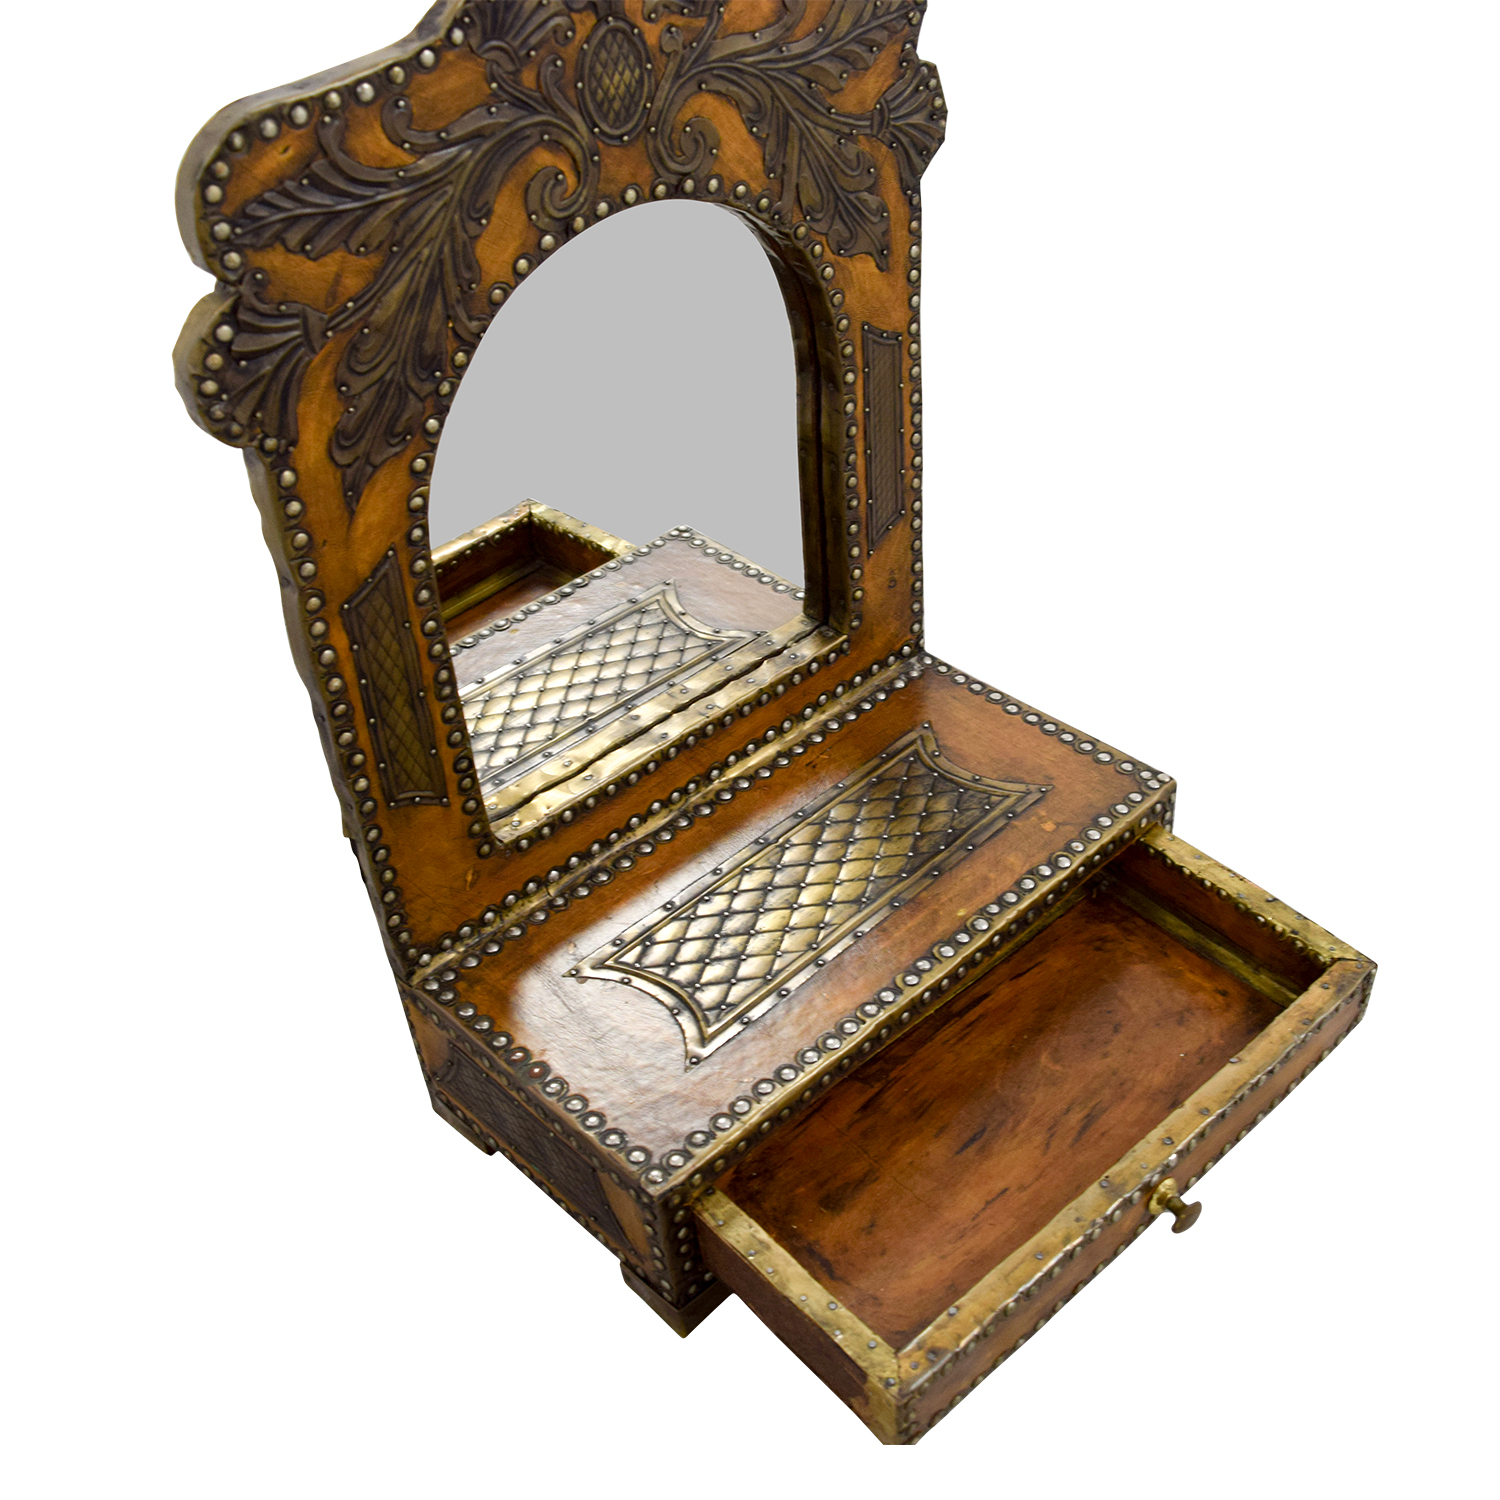 Southwestern Leather Studded Mirror price